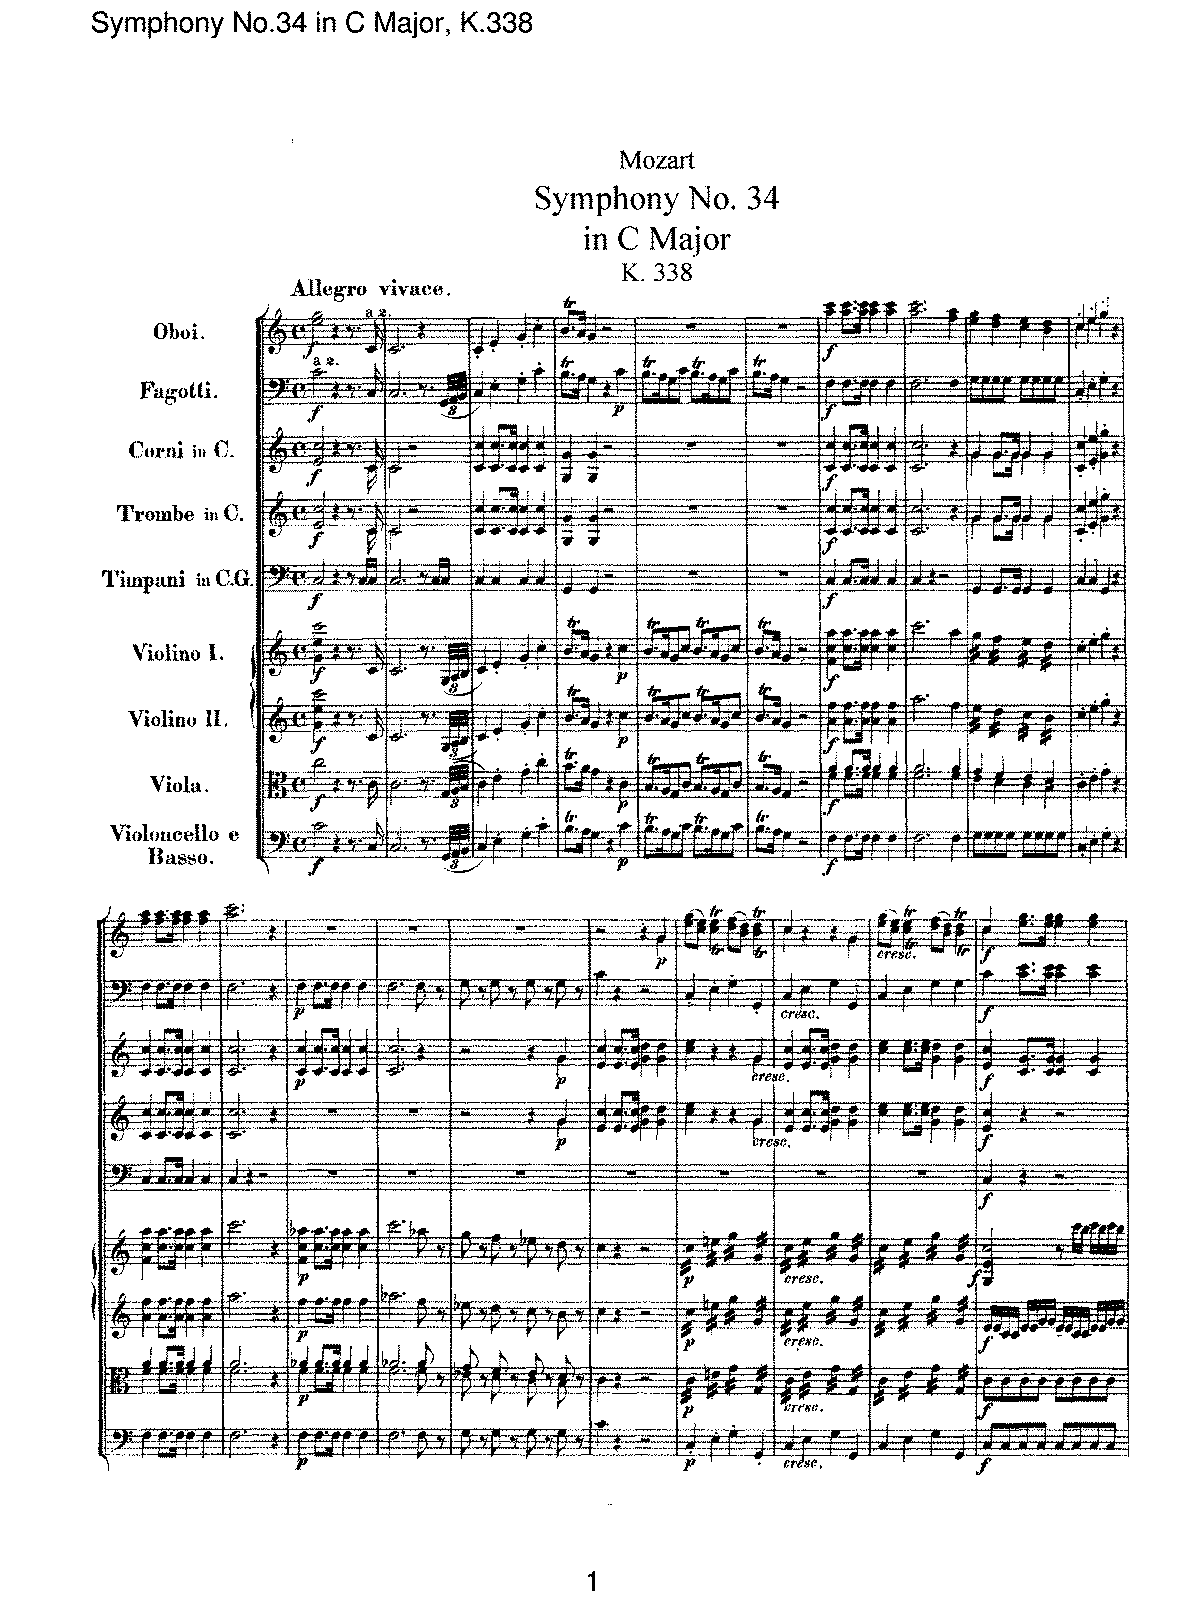 Mozart - Symphony No 34 in C Major, K338.pdf